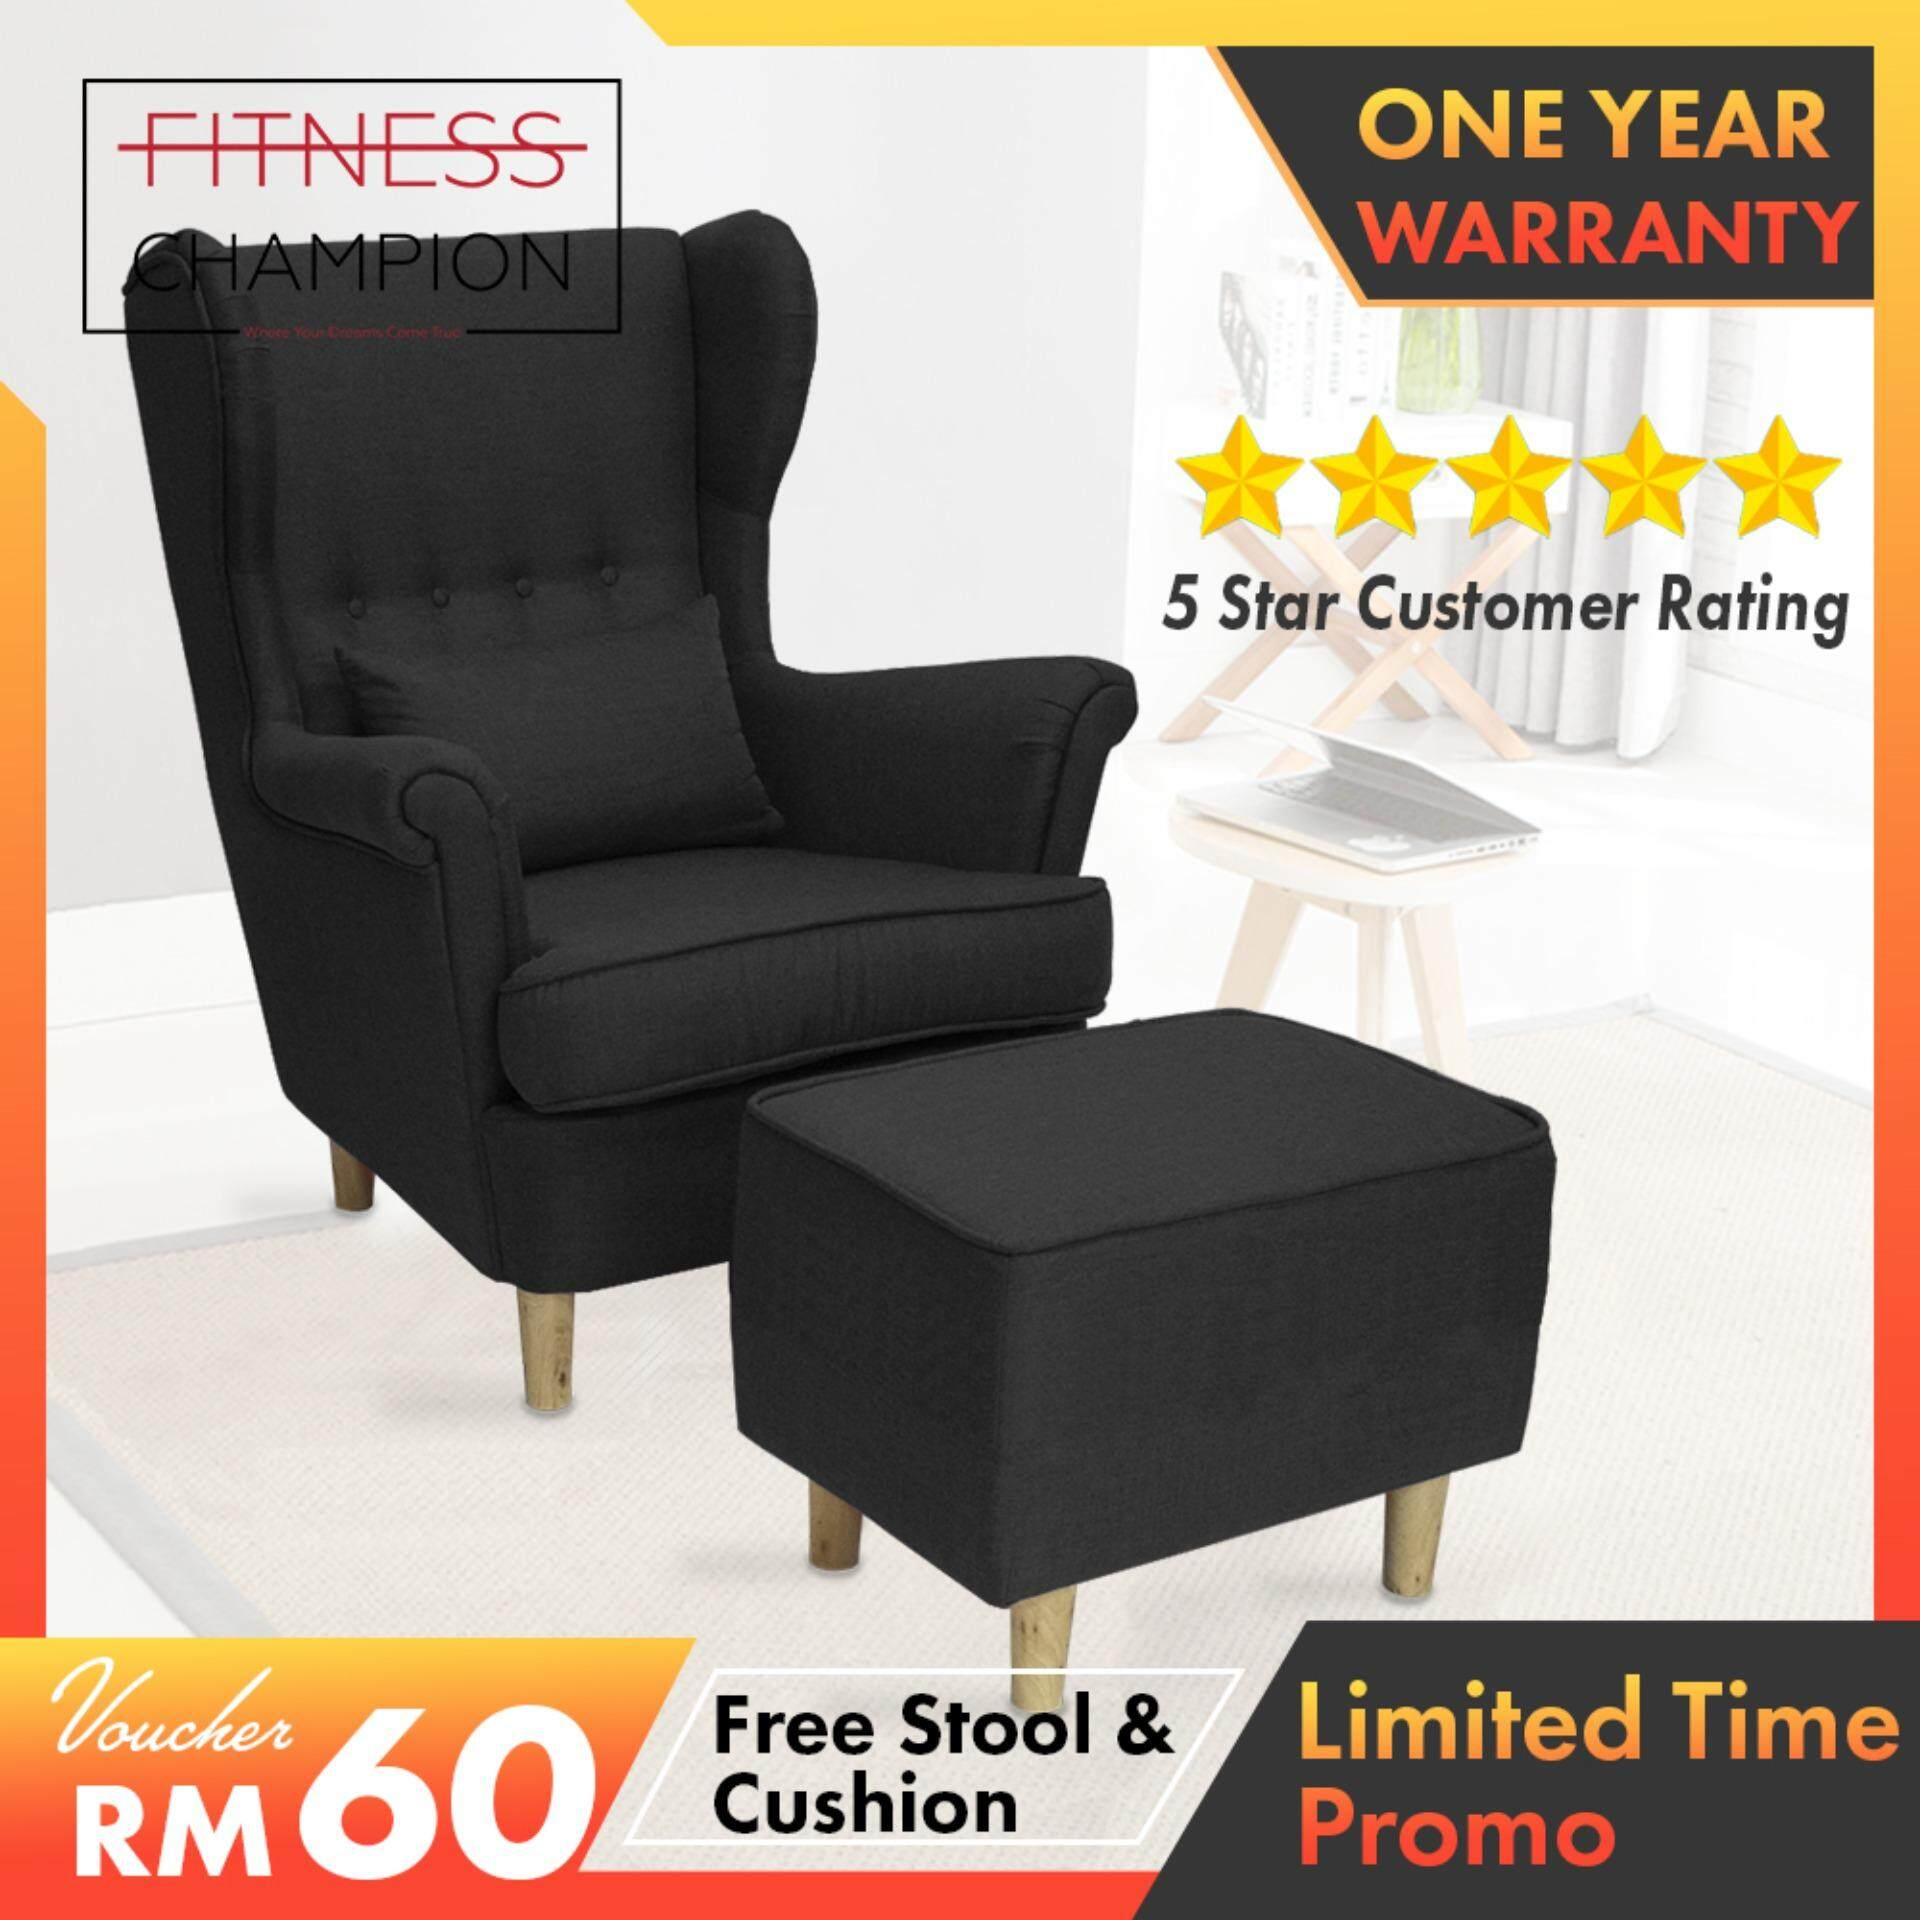 READY STOCK Now- FITCHAMP: RAYLEIGH Canvas Fabric High Back Wing Sofa Chair With FREE